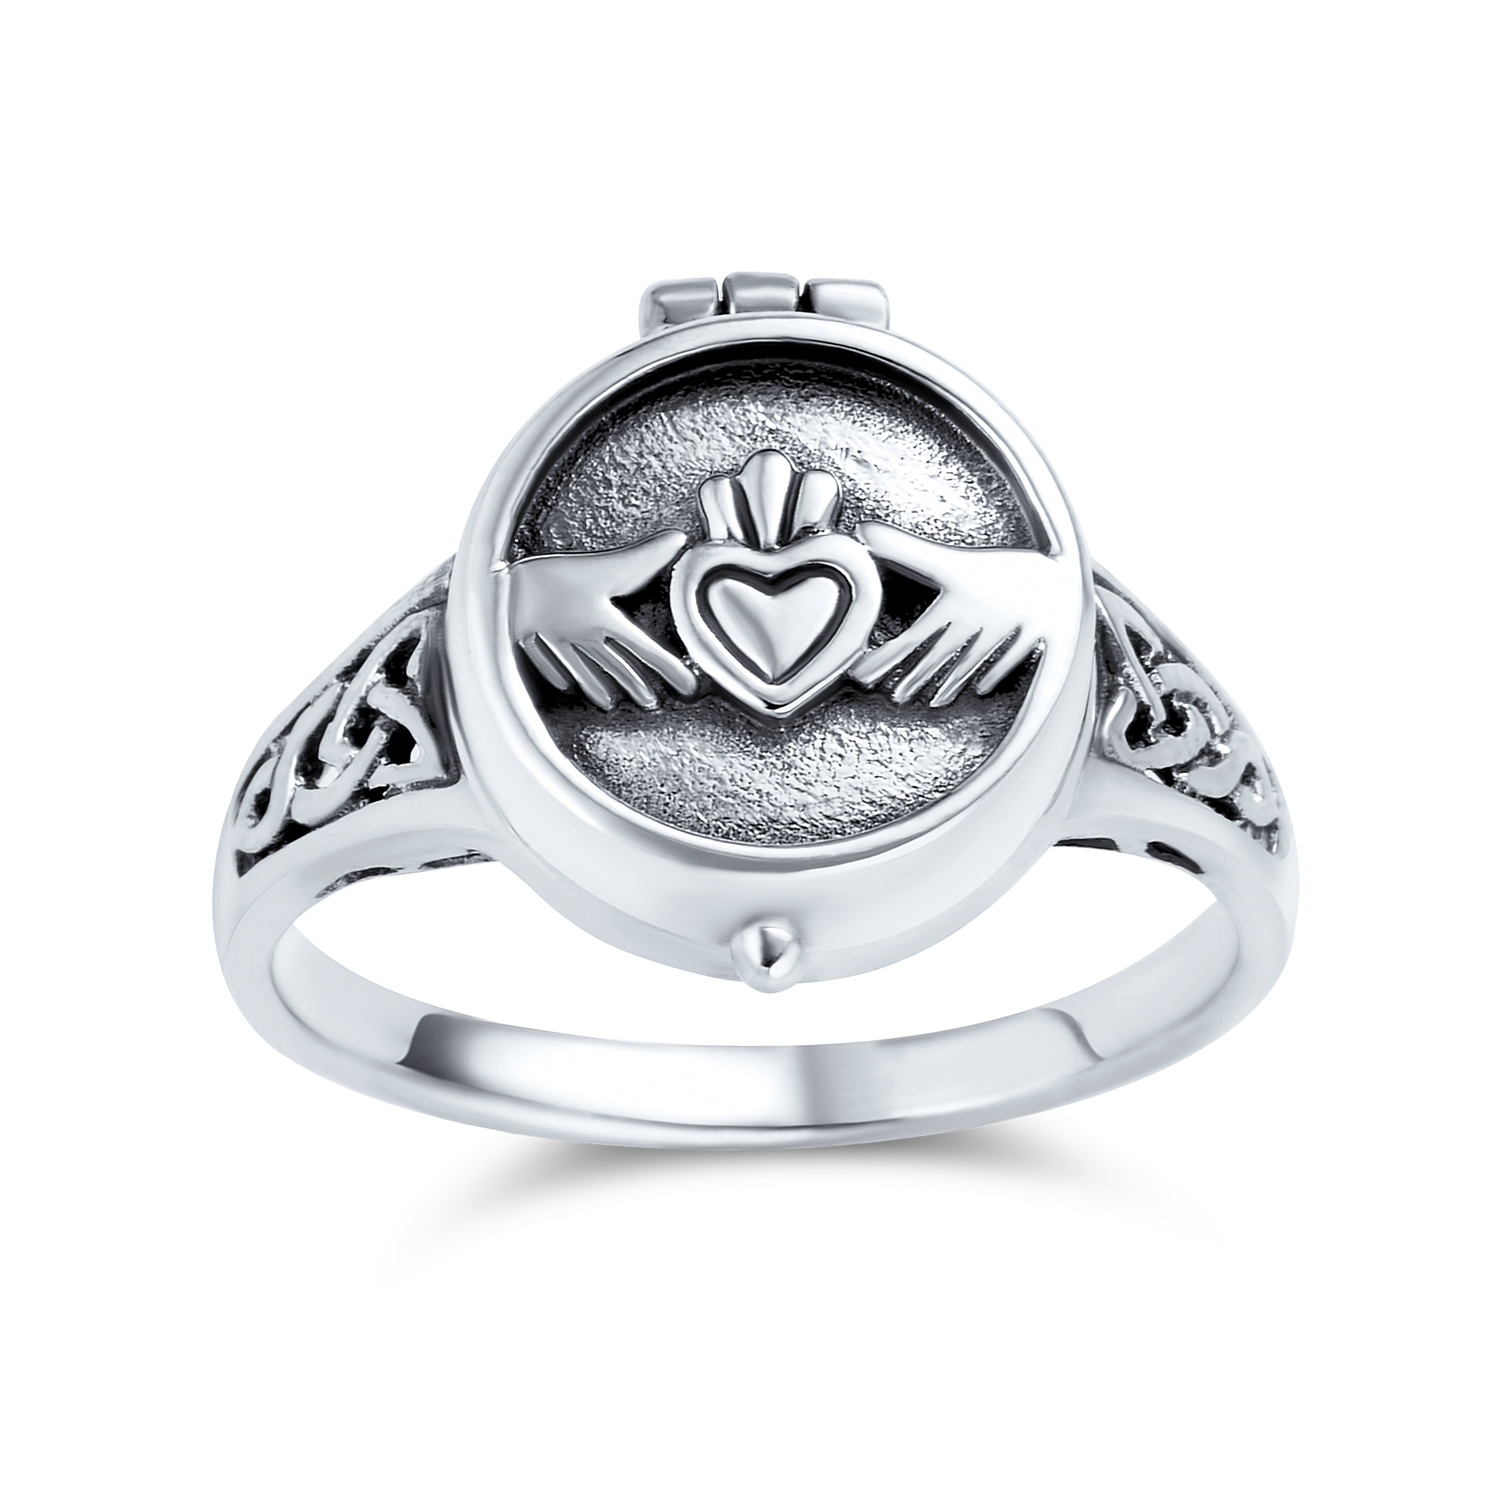 Bling Jewelry Bff Celtic Irish Friendship Couples Promise Heart Locket Claddagh Ring For Men For Women Oxidized 925 Sterling Silver Walmart Com Walmart Com